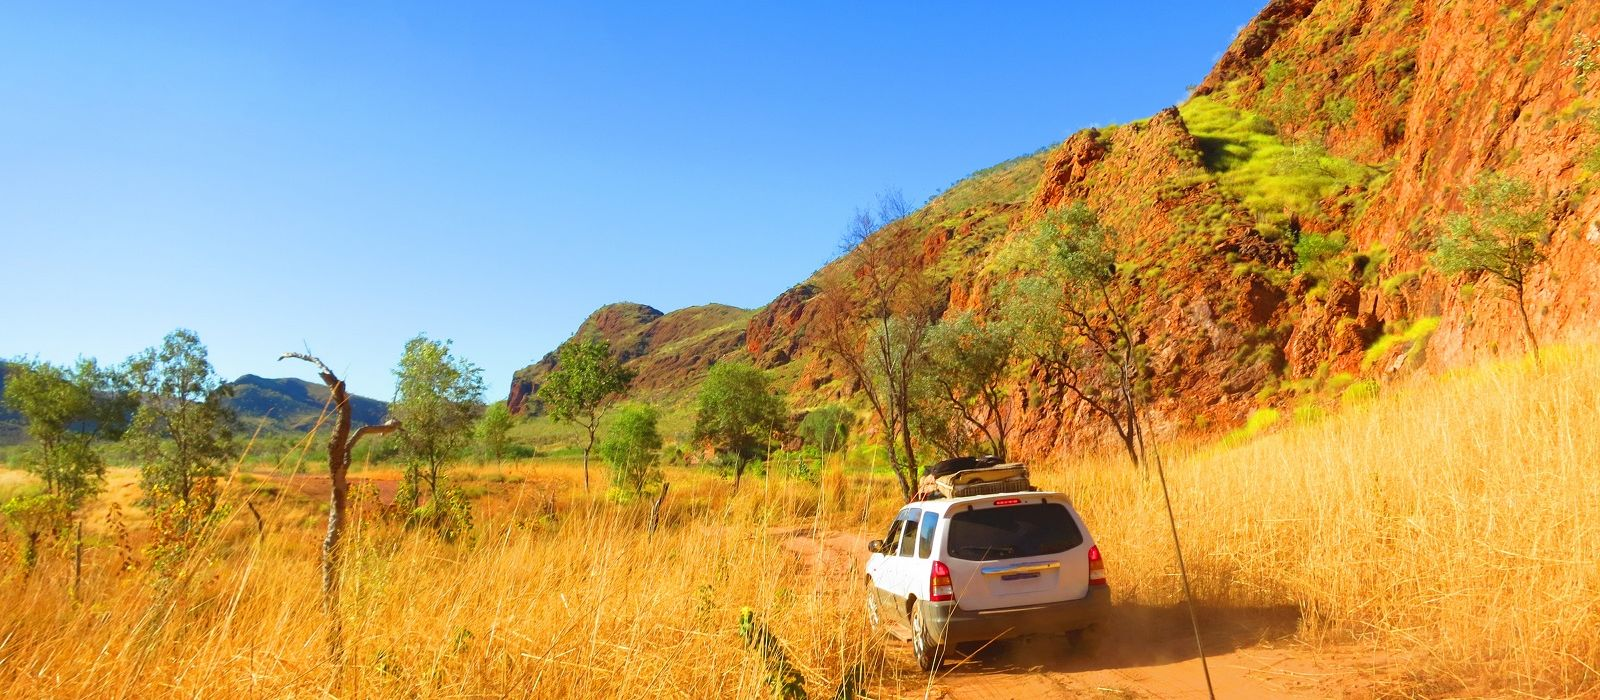 Outback, Uluru & the Great Barrier Reef Tour Trip 3